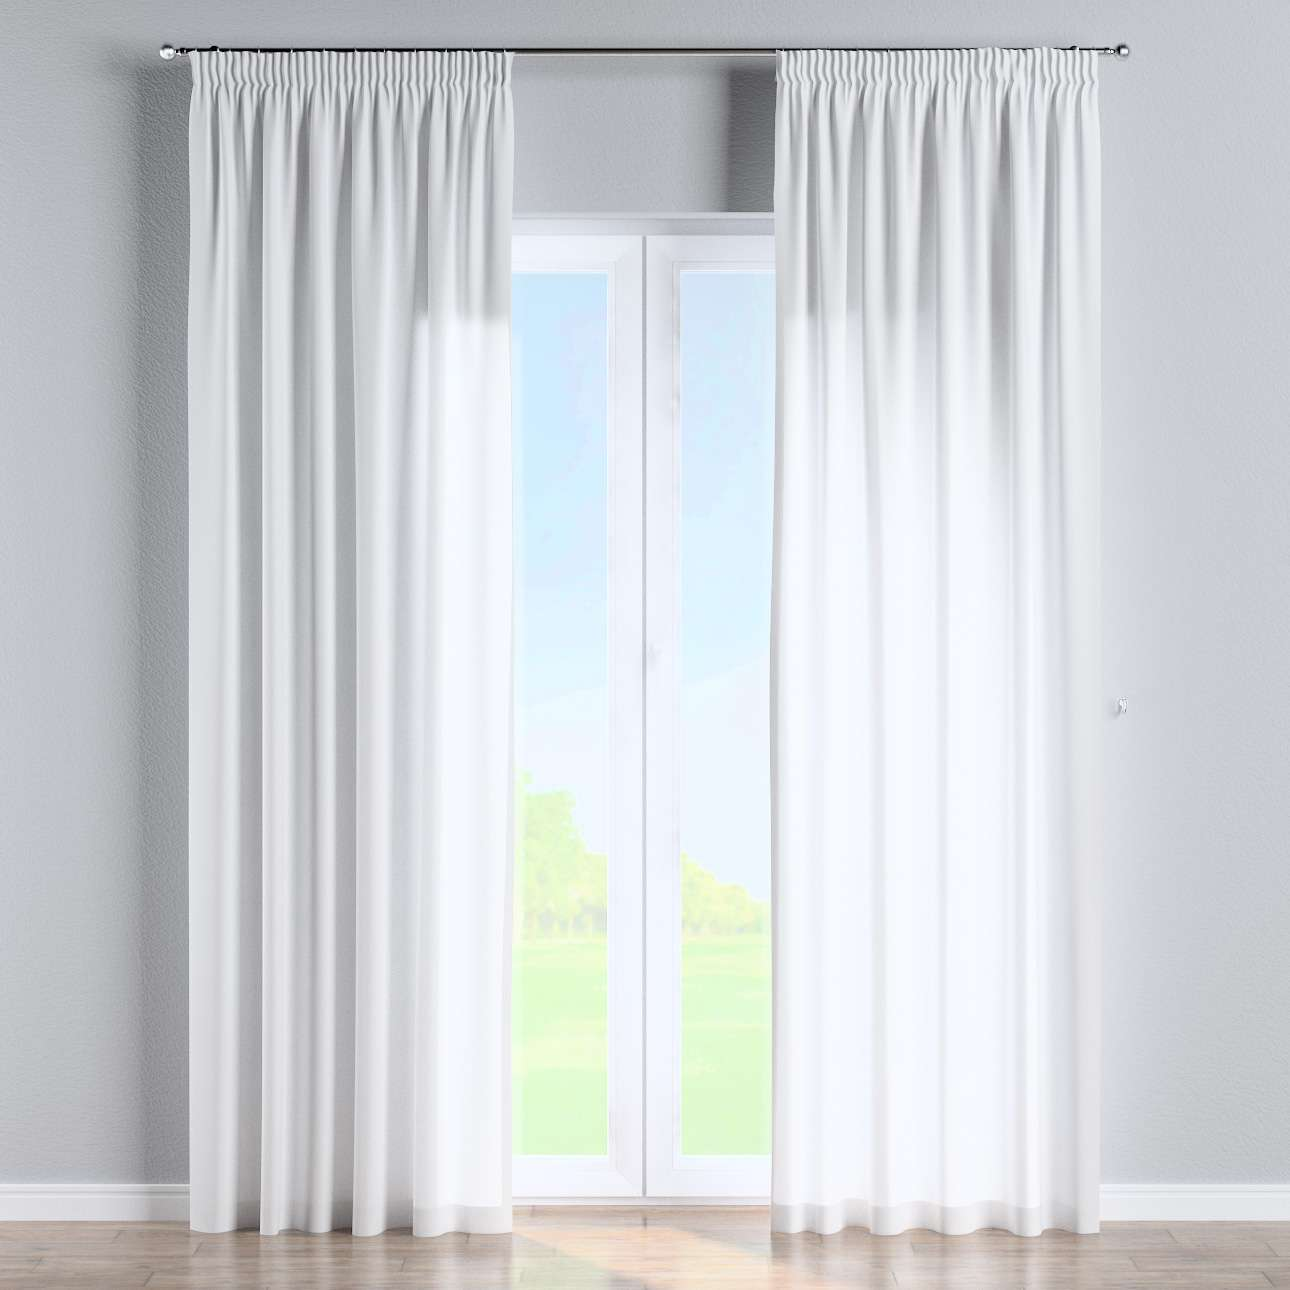 Pencil pleat curtains 130 × 260 cm (51 × 102 inch) in collection Loneta , fabric: 133-02